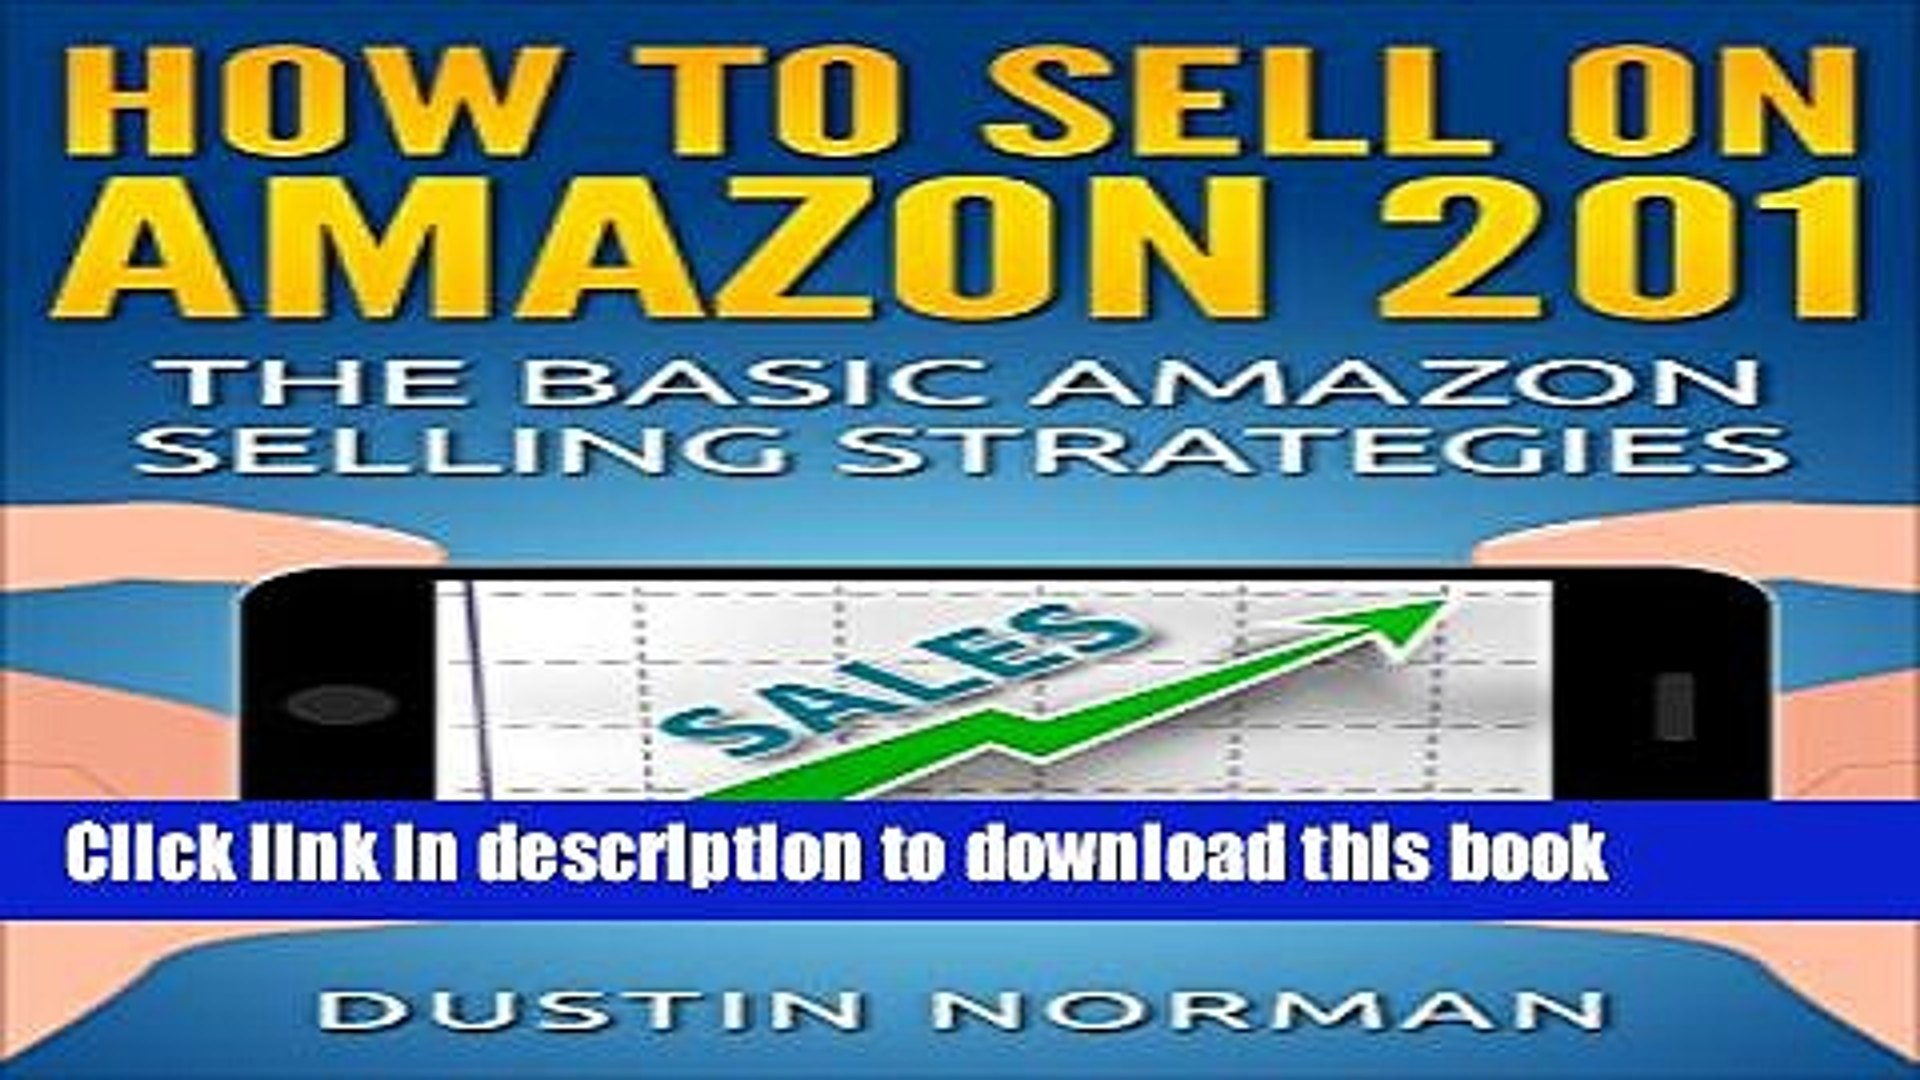 [PDF] How to Sell on Amazon 201: The Basic Amazon Selling Strategies (Selling on Amazon Tutorials)